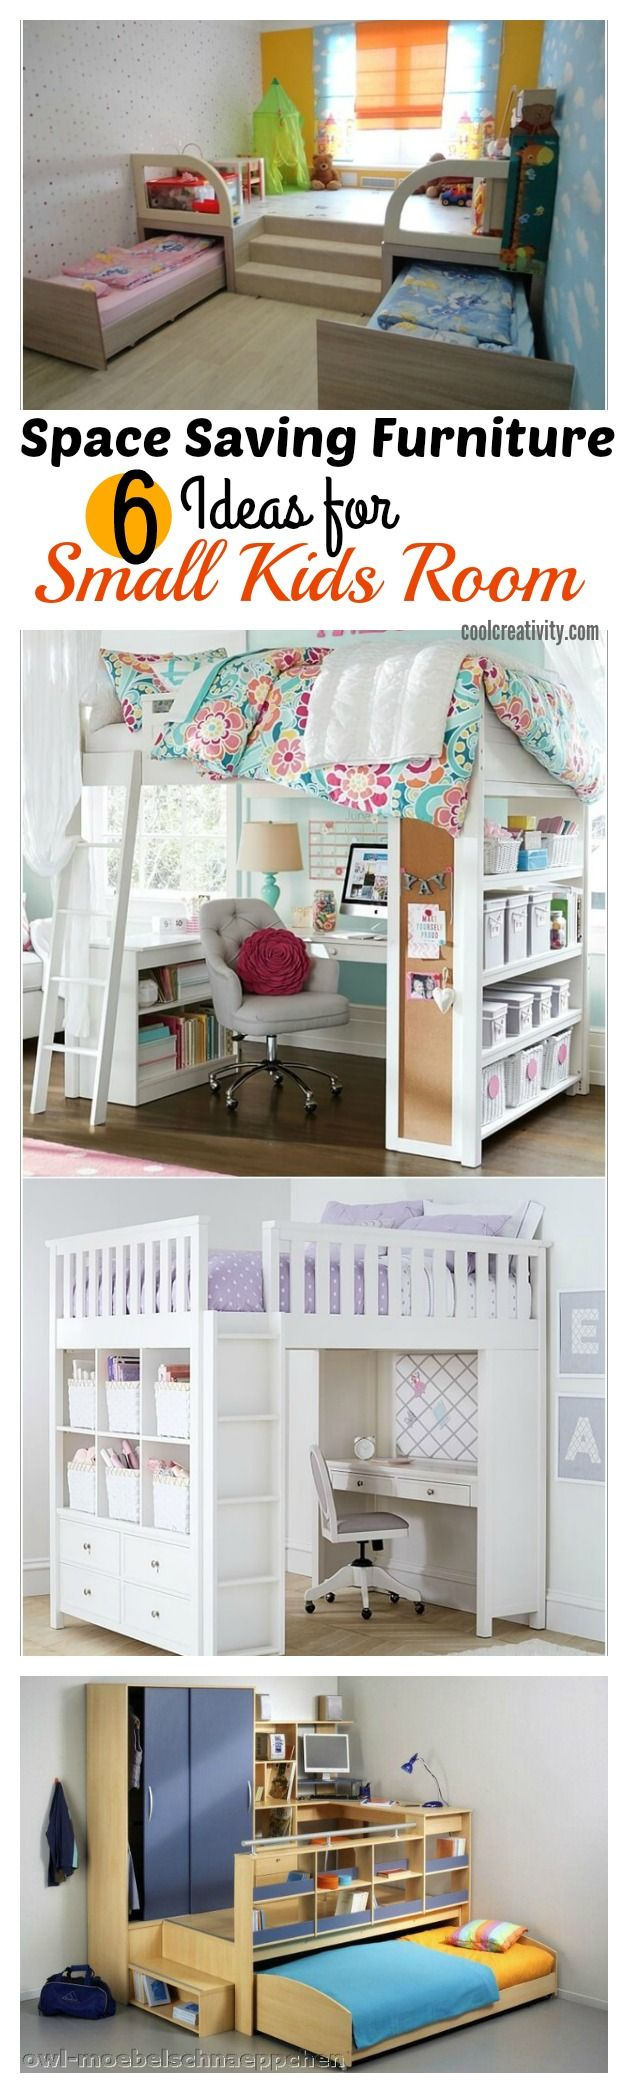 Kids Bedroom Ideas For Small Rooms Best 25 Small Kids Rooms Ideas On Pinterest  Bunkbeds For Small